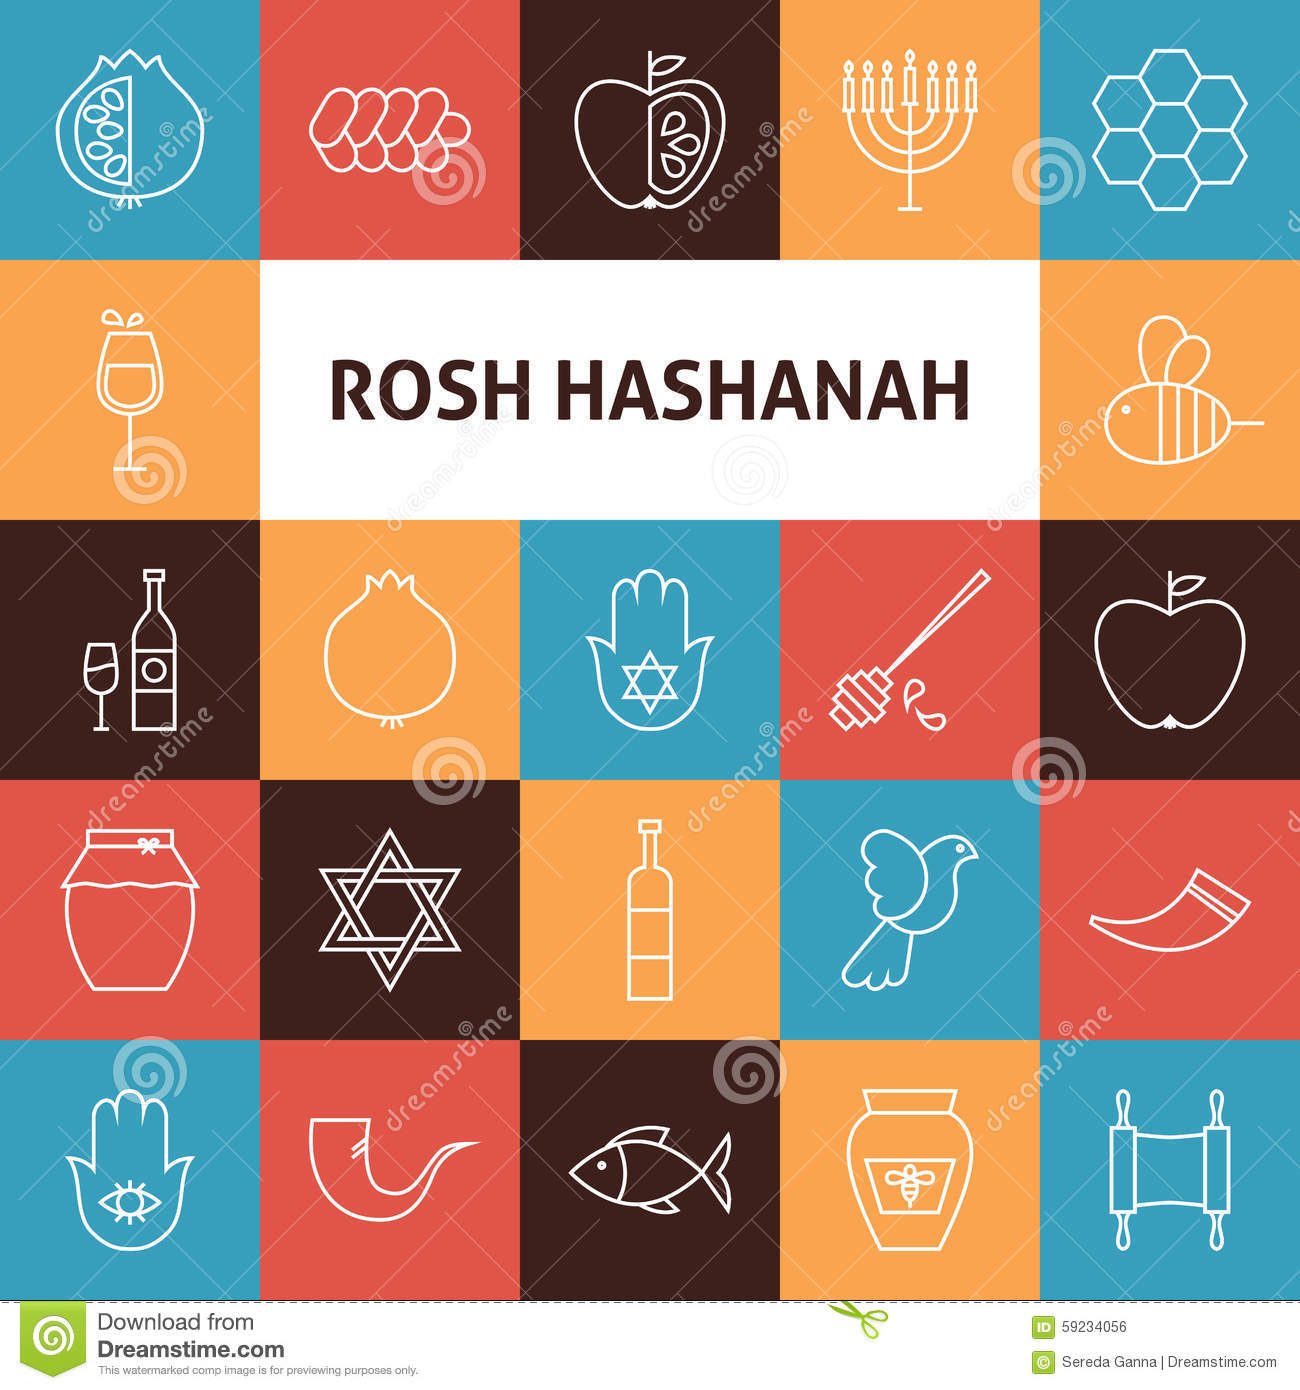 an analysis of the jewish holiday rosh hashanah Divrei torah and essays on rosh hashanah current solomon on tabs, high holidays to energize the jewish people by integrating the study of the torah.